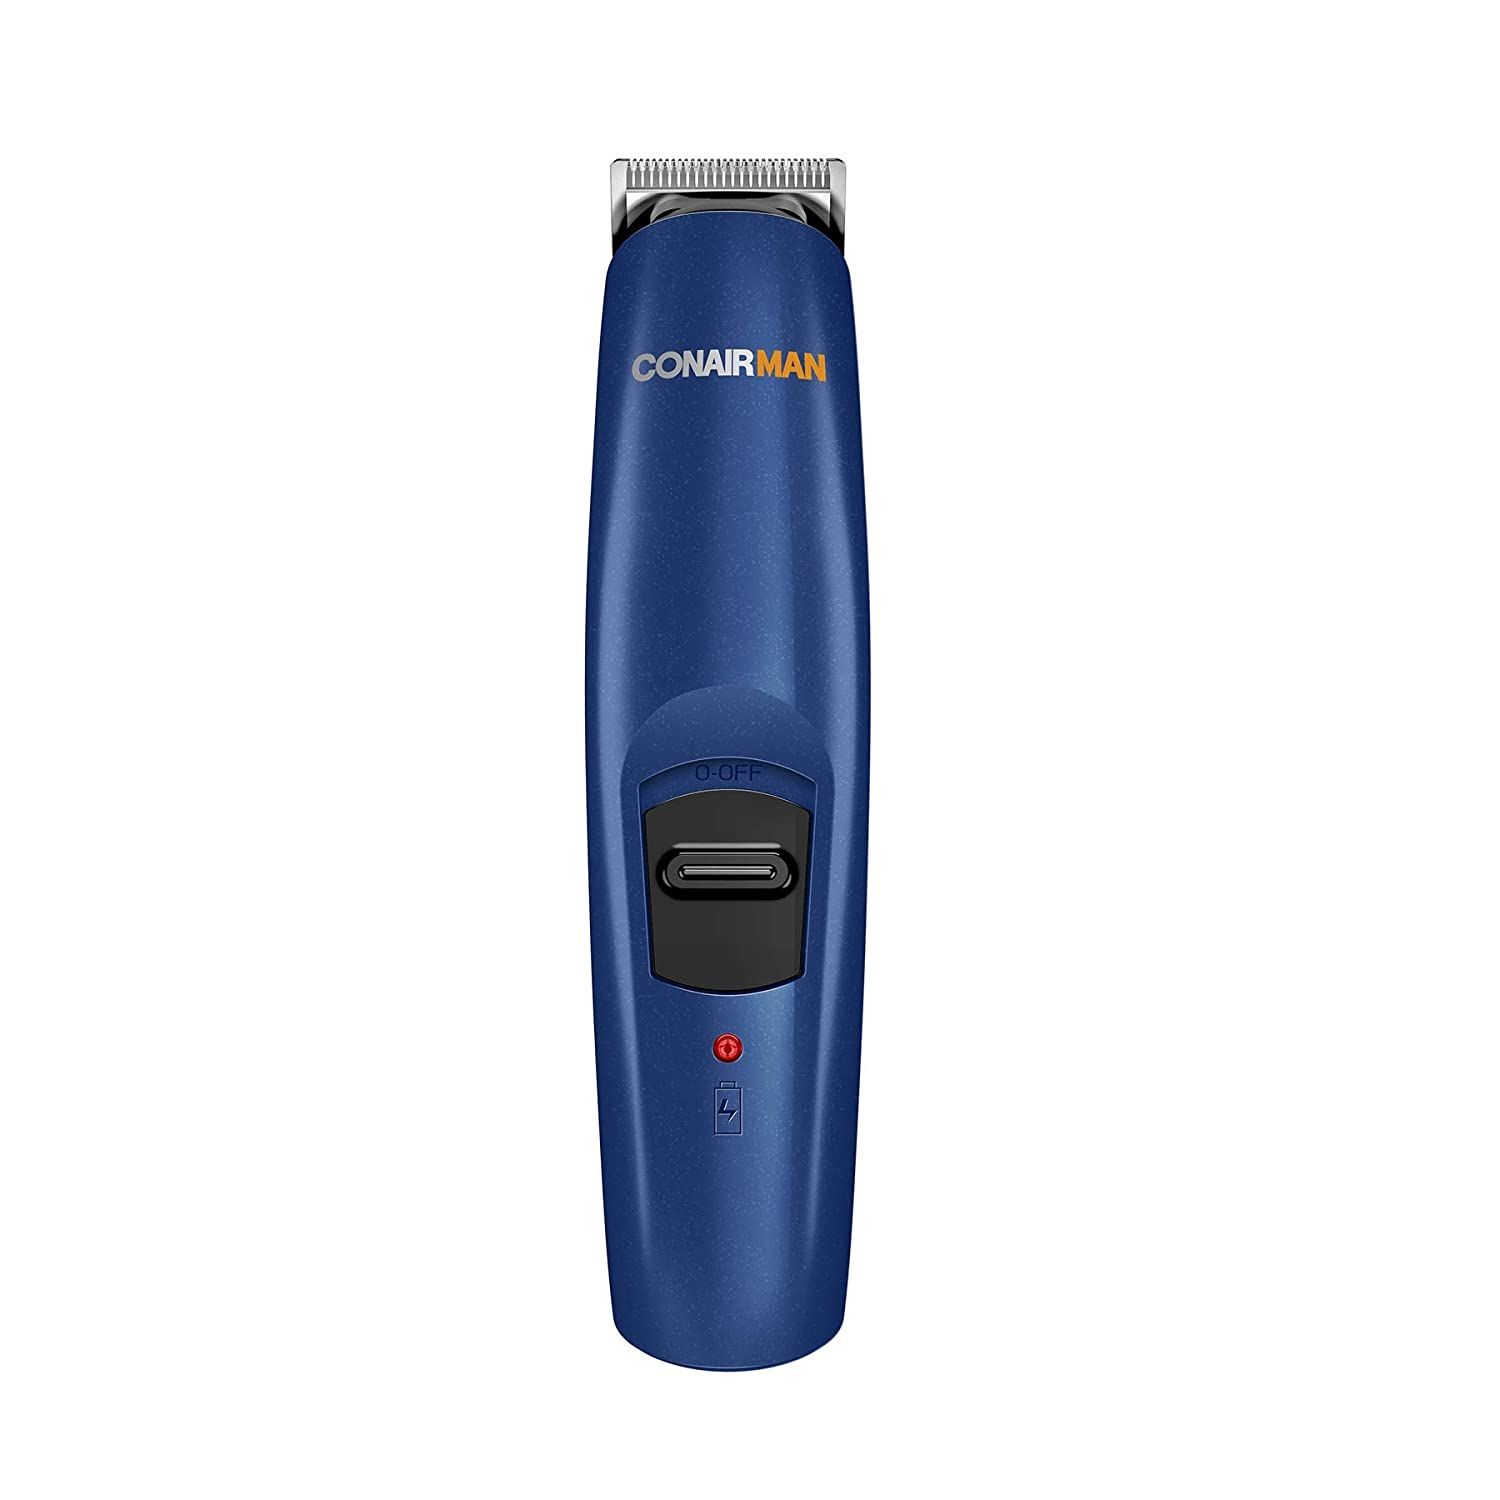 ConairMAN Beard & Mustache Trimmer, Cordless/Rechargeable GMT10RCSB